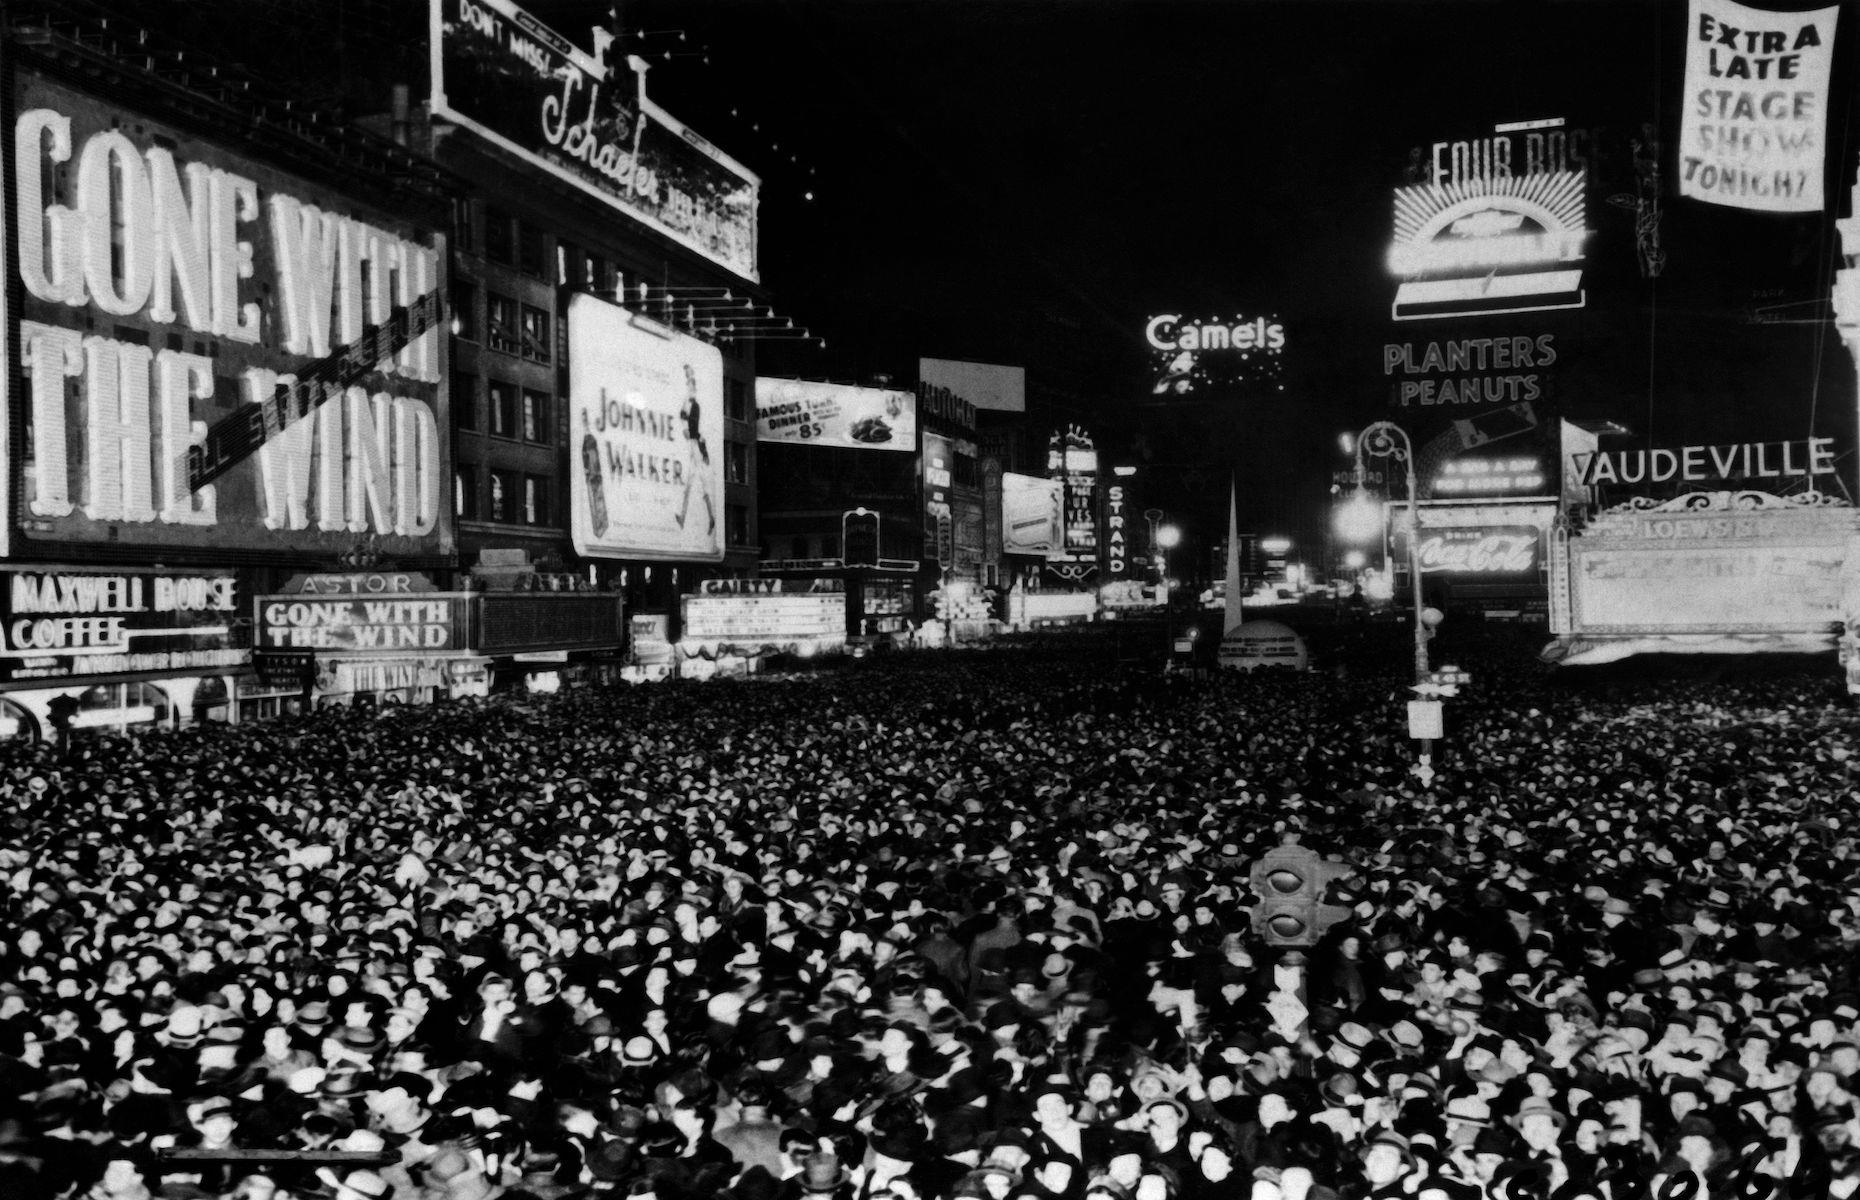 Slide 5 of 48: Formerly known as Longacre Square, Times Square was renamed in 1904 after The New York Times moved its headquartersthere. The junction of Broadway and Seventh Avenue has since become one of the most famous commercial squares in the world with its theaters, cinemas and electronic billboards. It's also the site of the city's annual New Year's Eve ball drop (pictured here in 1939), a tradition which began when the newspaper held a New Year's Eve event to celebrate itsmove.